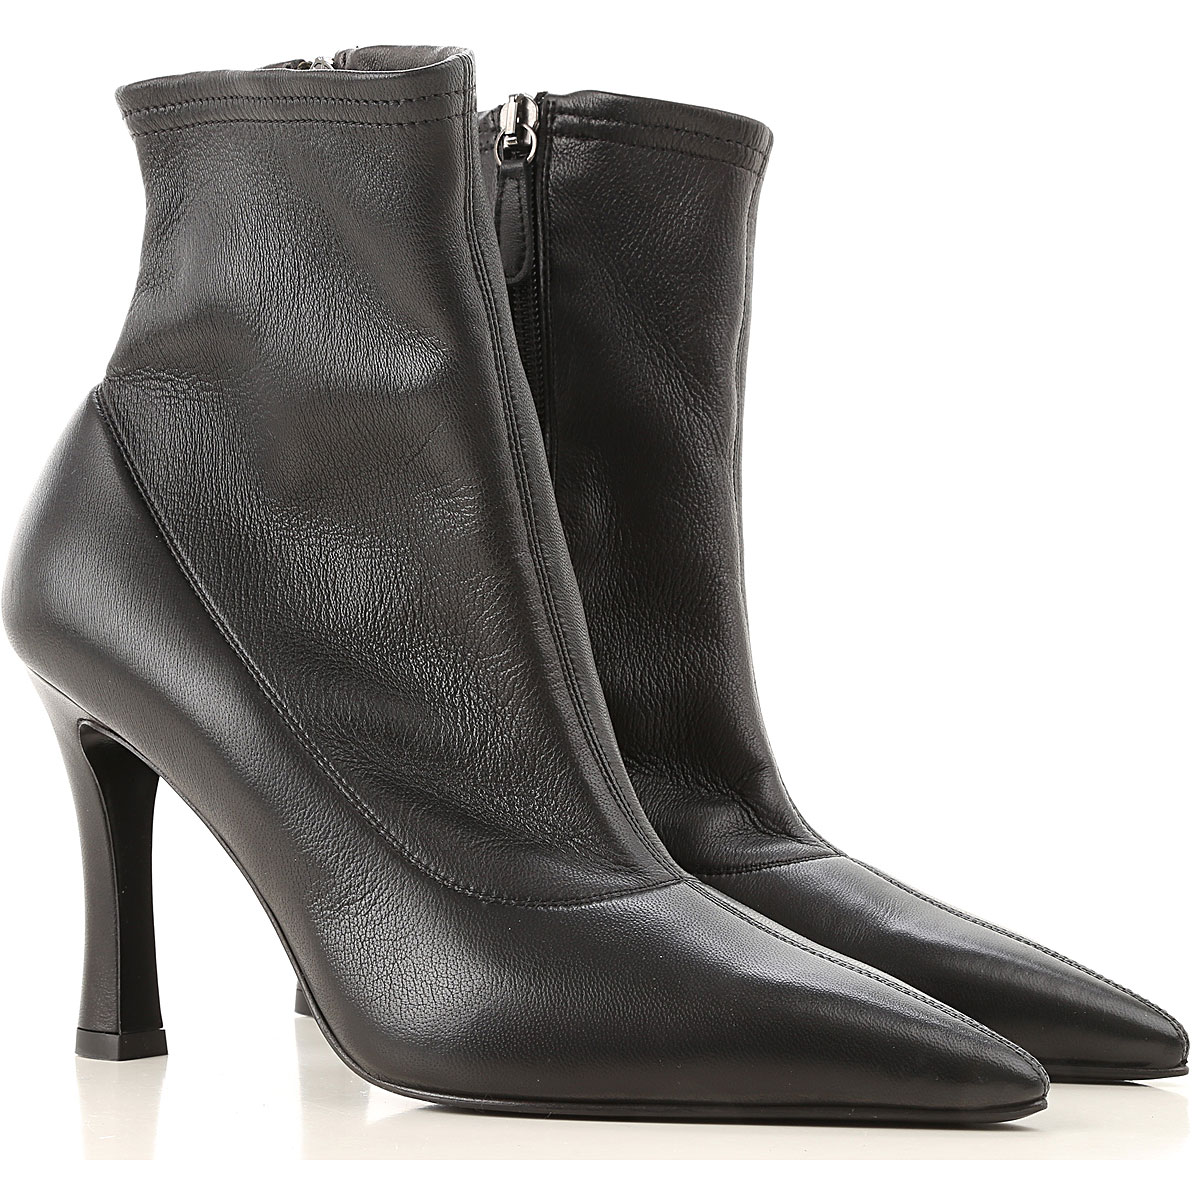 Lella Baldi Boots for Women, Booties On Sale, Black, Leather, 2019, 7 9